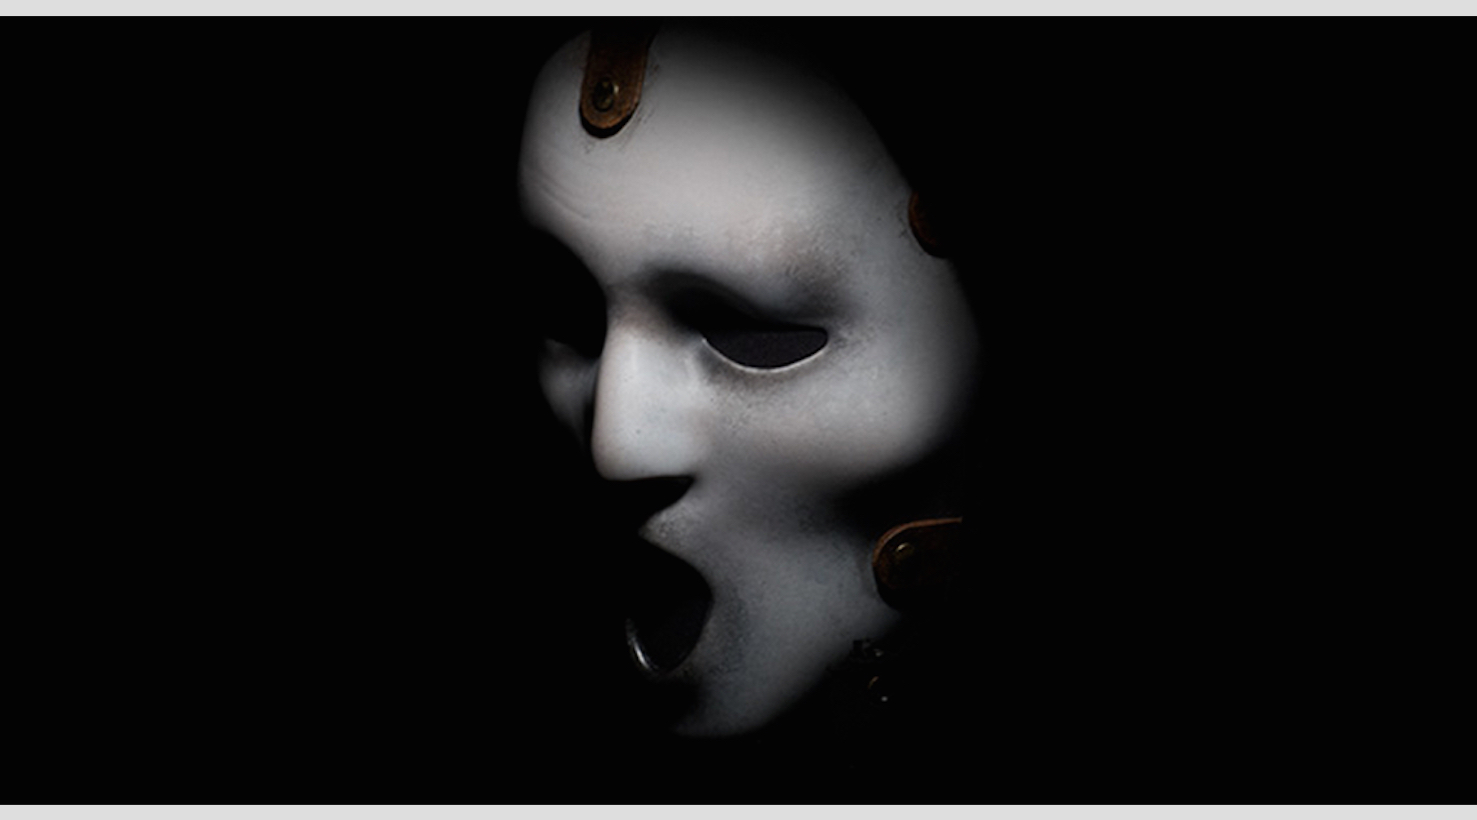 New Scream Mask TV Show.